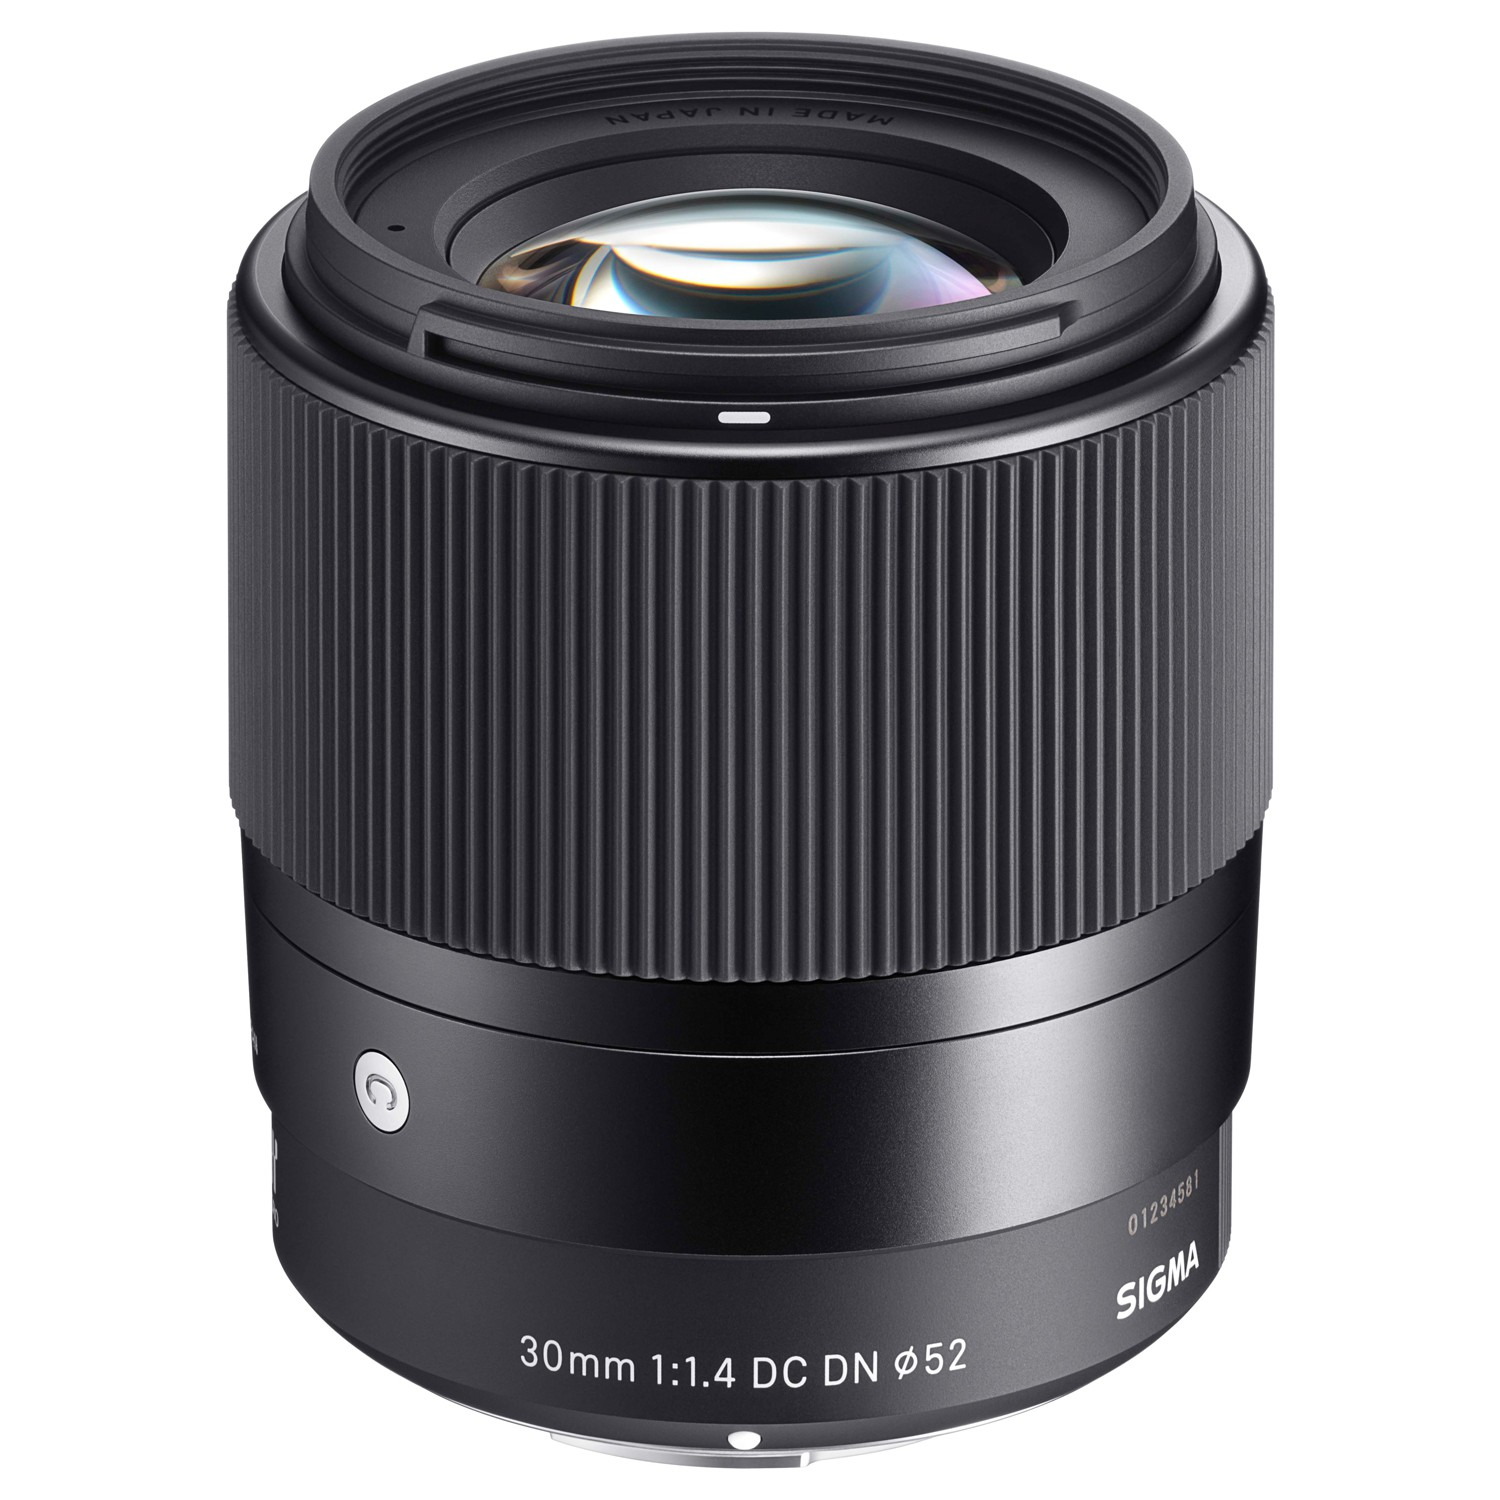 Super sharp Sigma lens with F1.4 Bokeh (45mm equivalent)